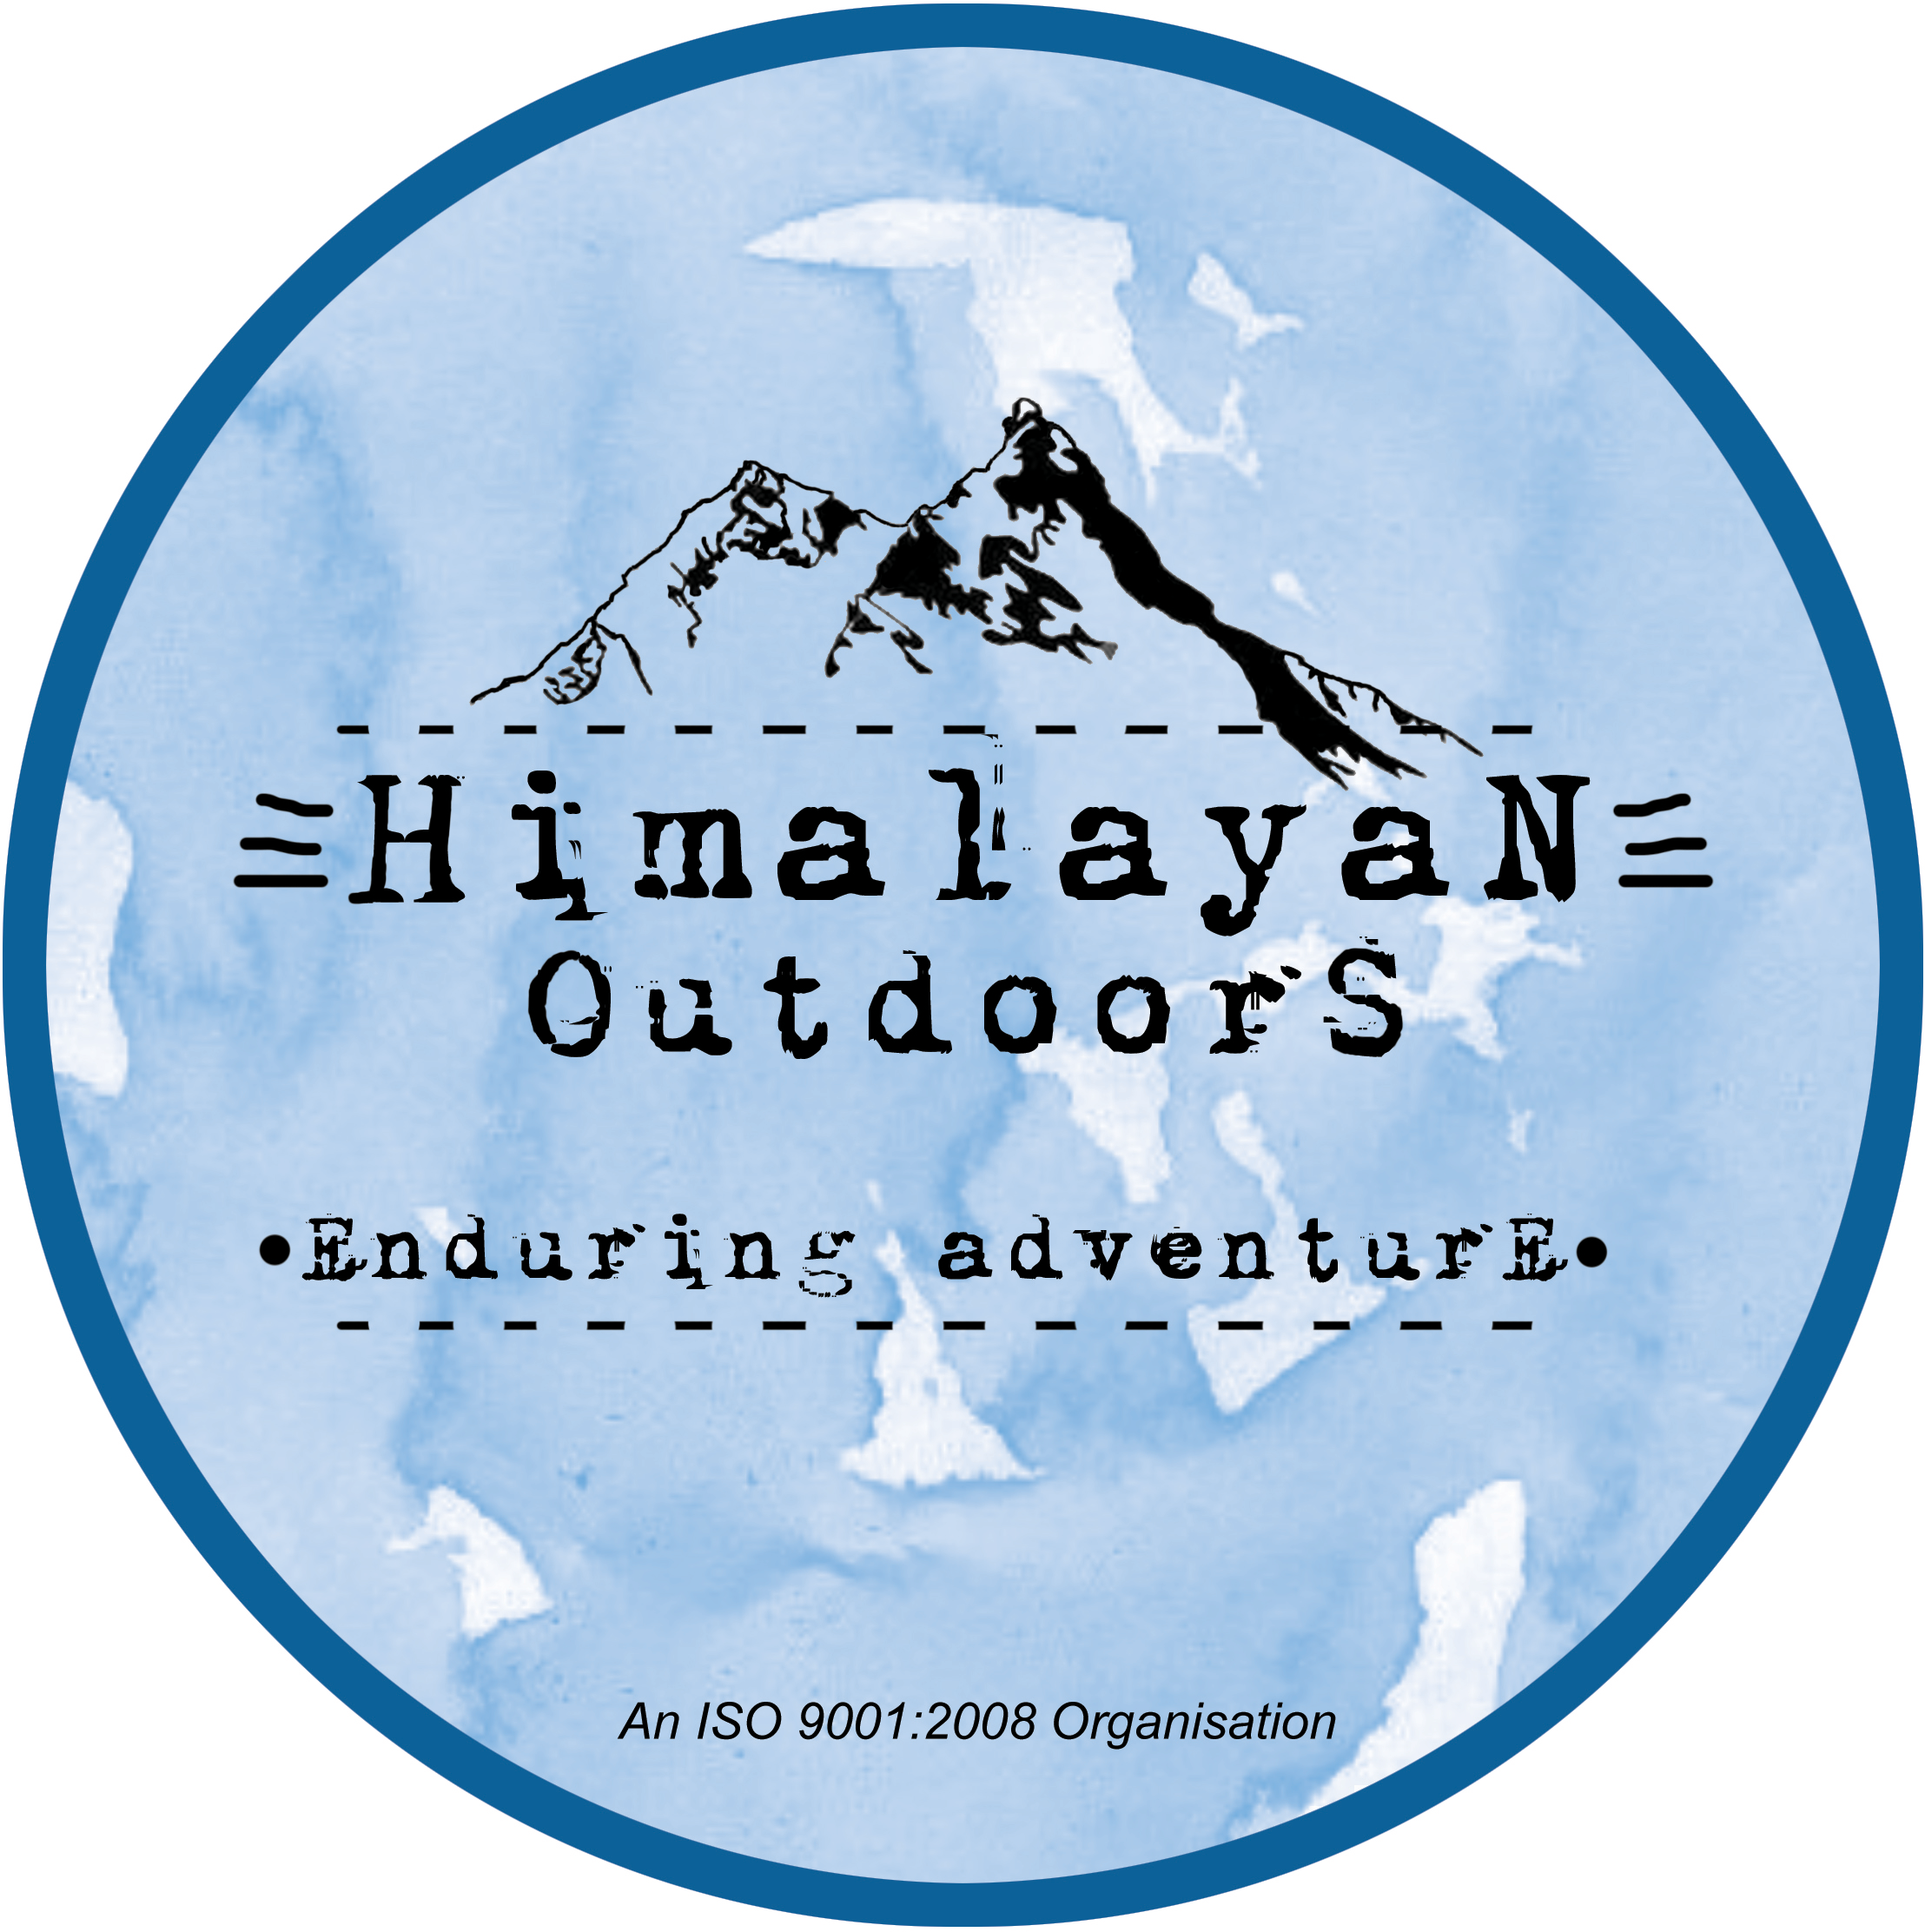 Himalayan Outdoors - Rishikesh Image